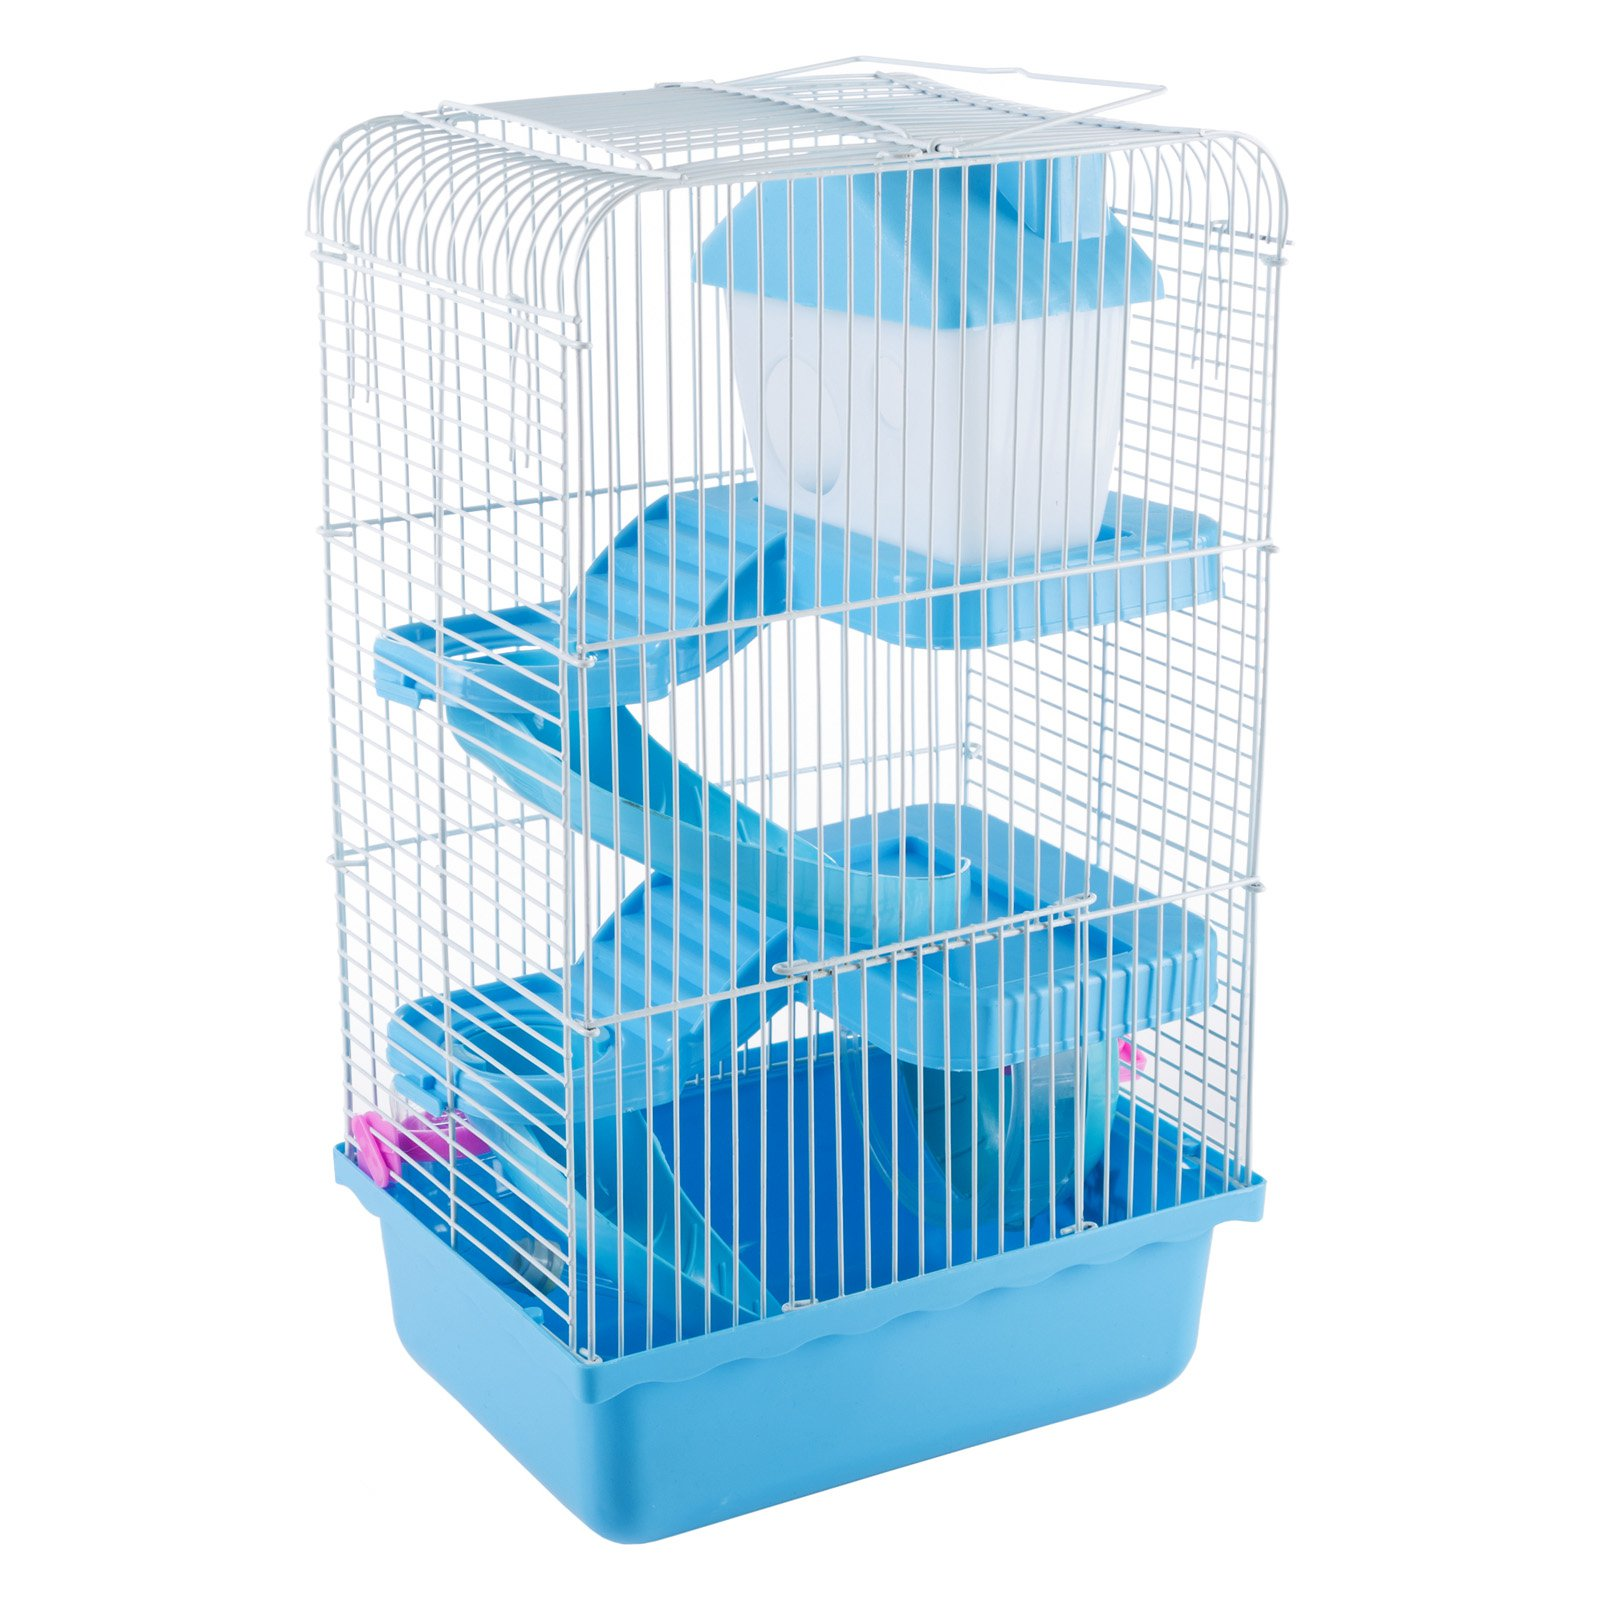 Petmaker Hamster Cage Habitat with Attachments and Accessories